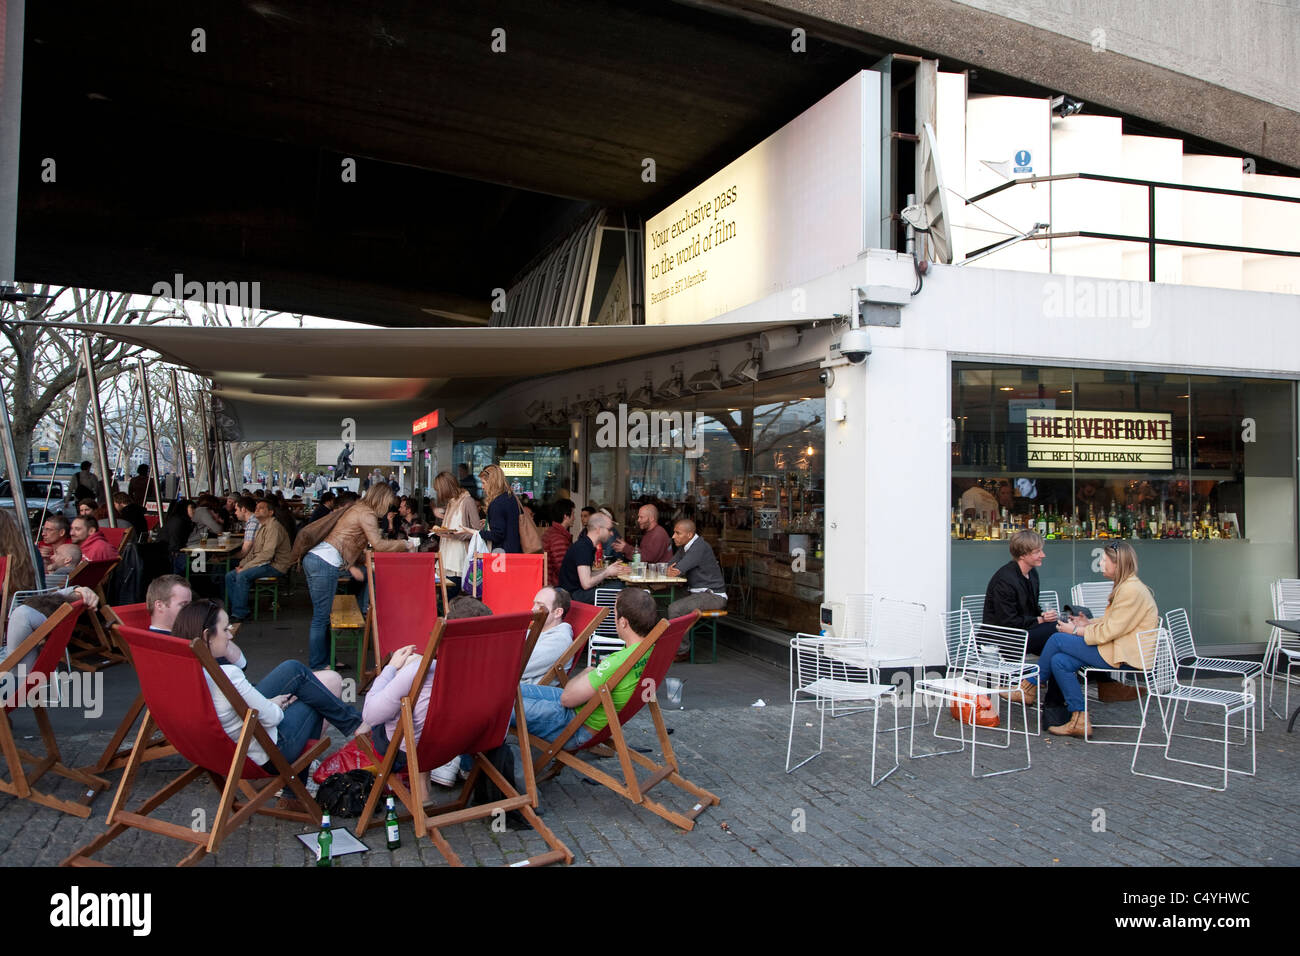 Riverfront Bar at the British Film Institute - BFI, South Bank, London, England, UK - Stock Image